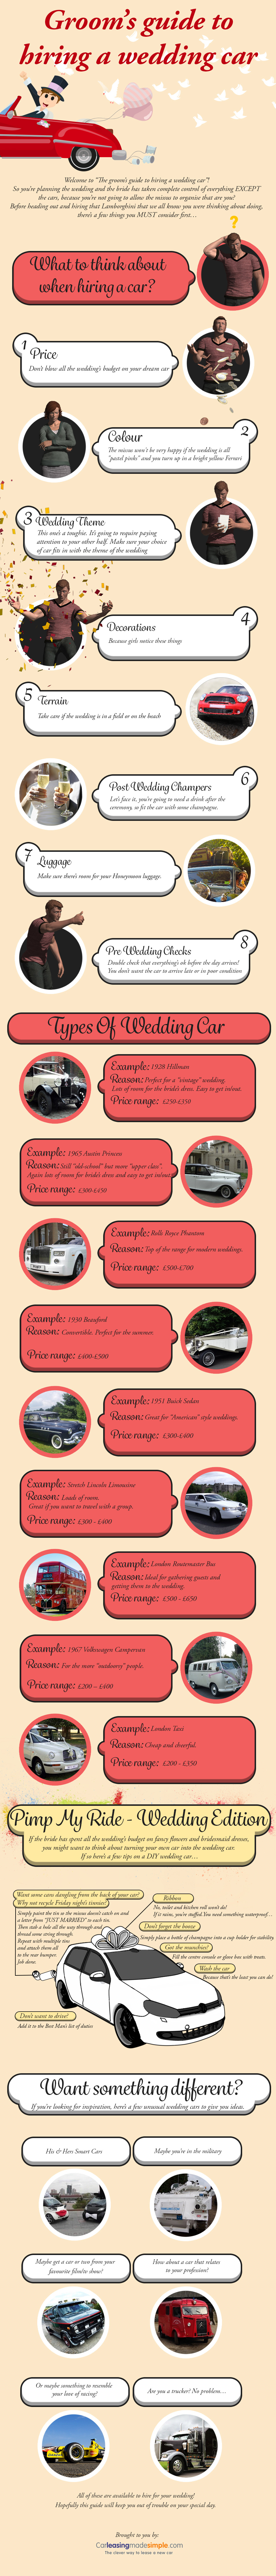 Groom's Guide To Hiring A Wedding Car